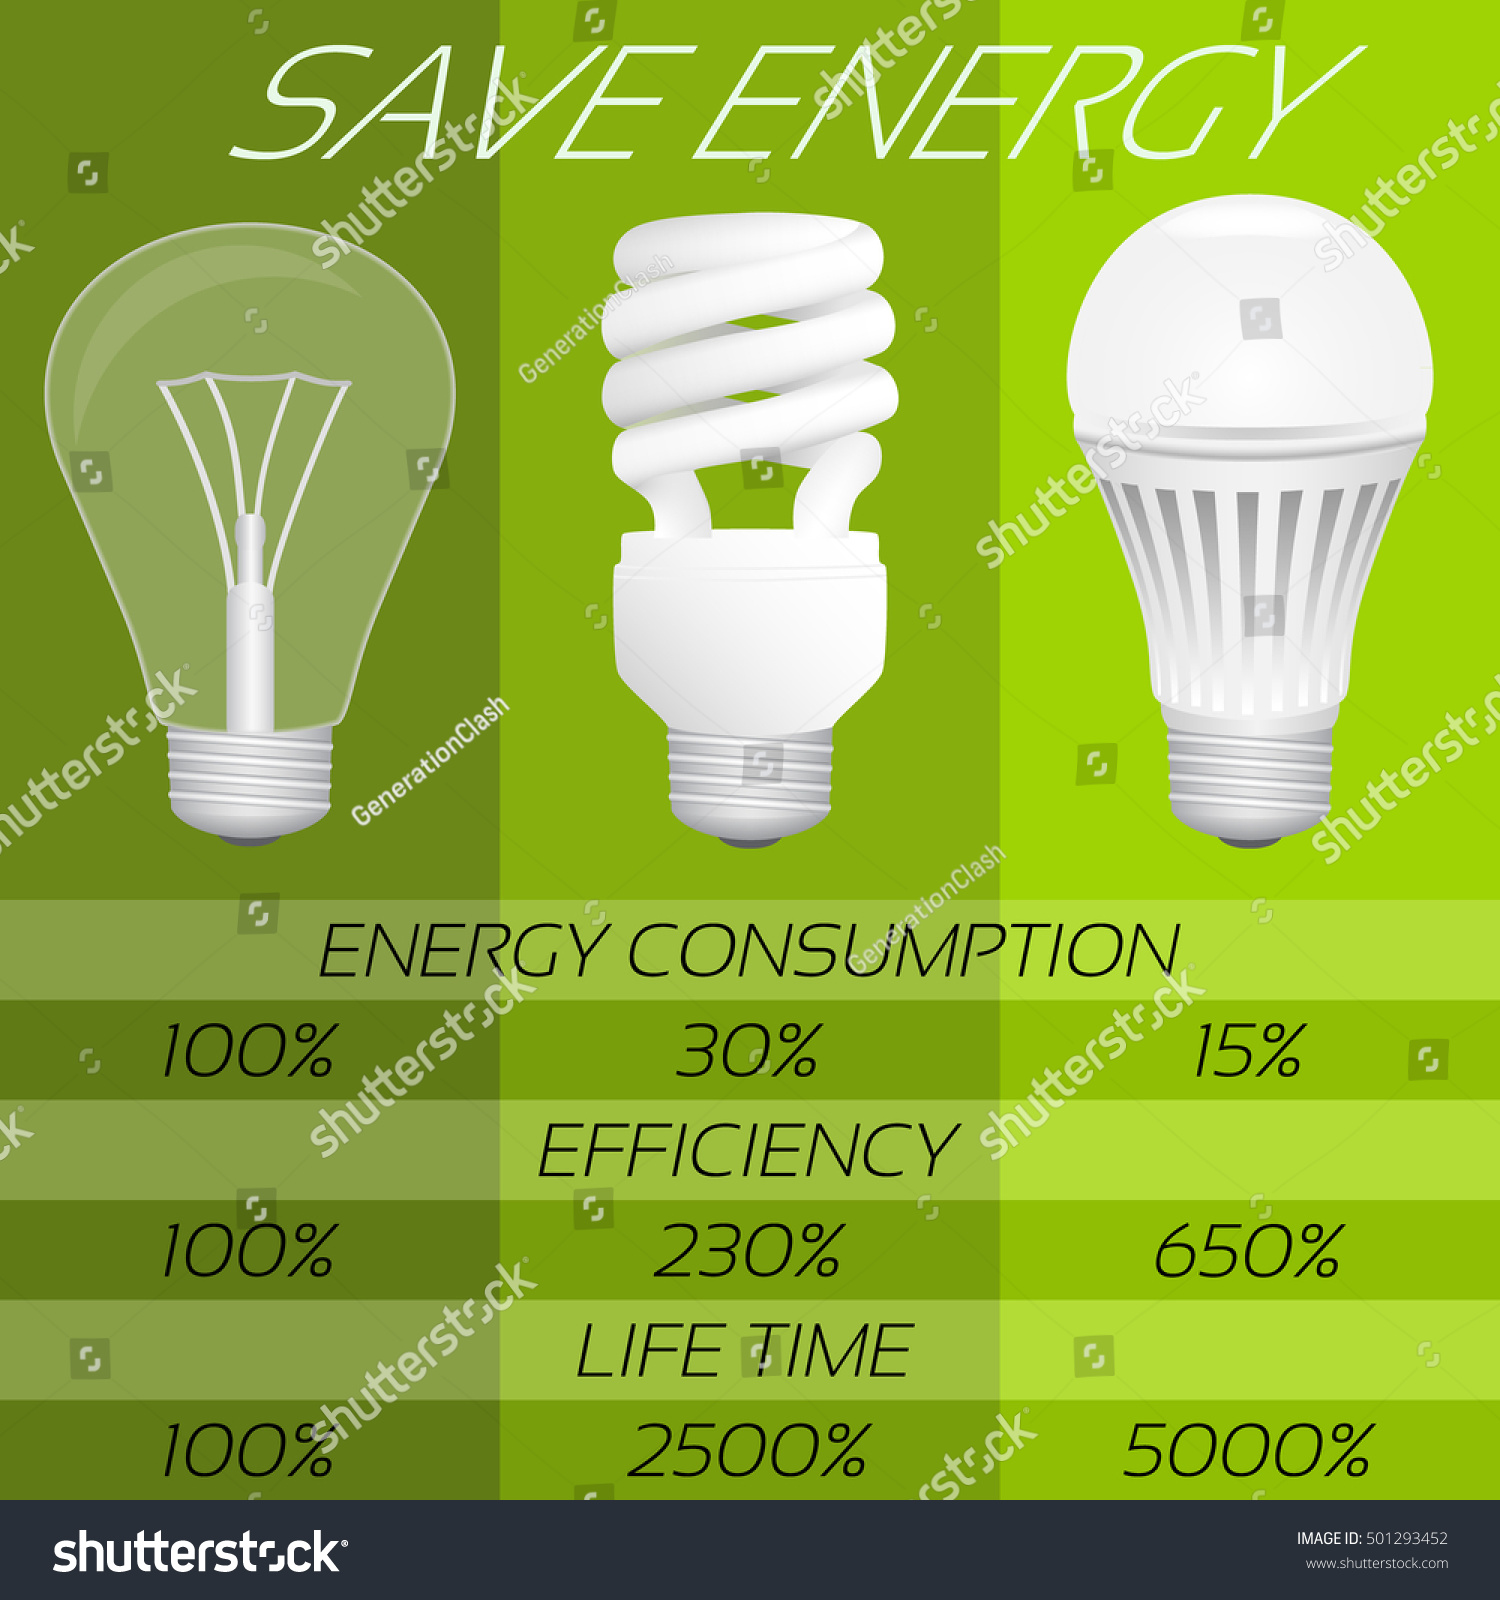 Save Energy Infographic Comparison Different Types Stock Vector ... for Led Light Bulbs Comparison  8lpfiz